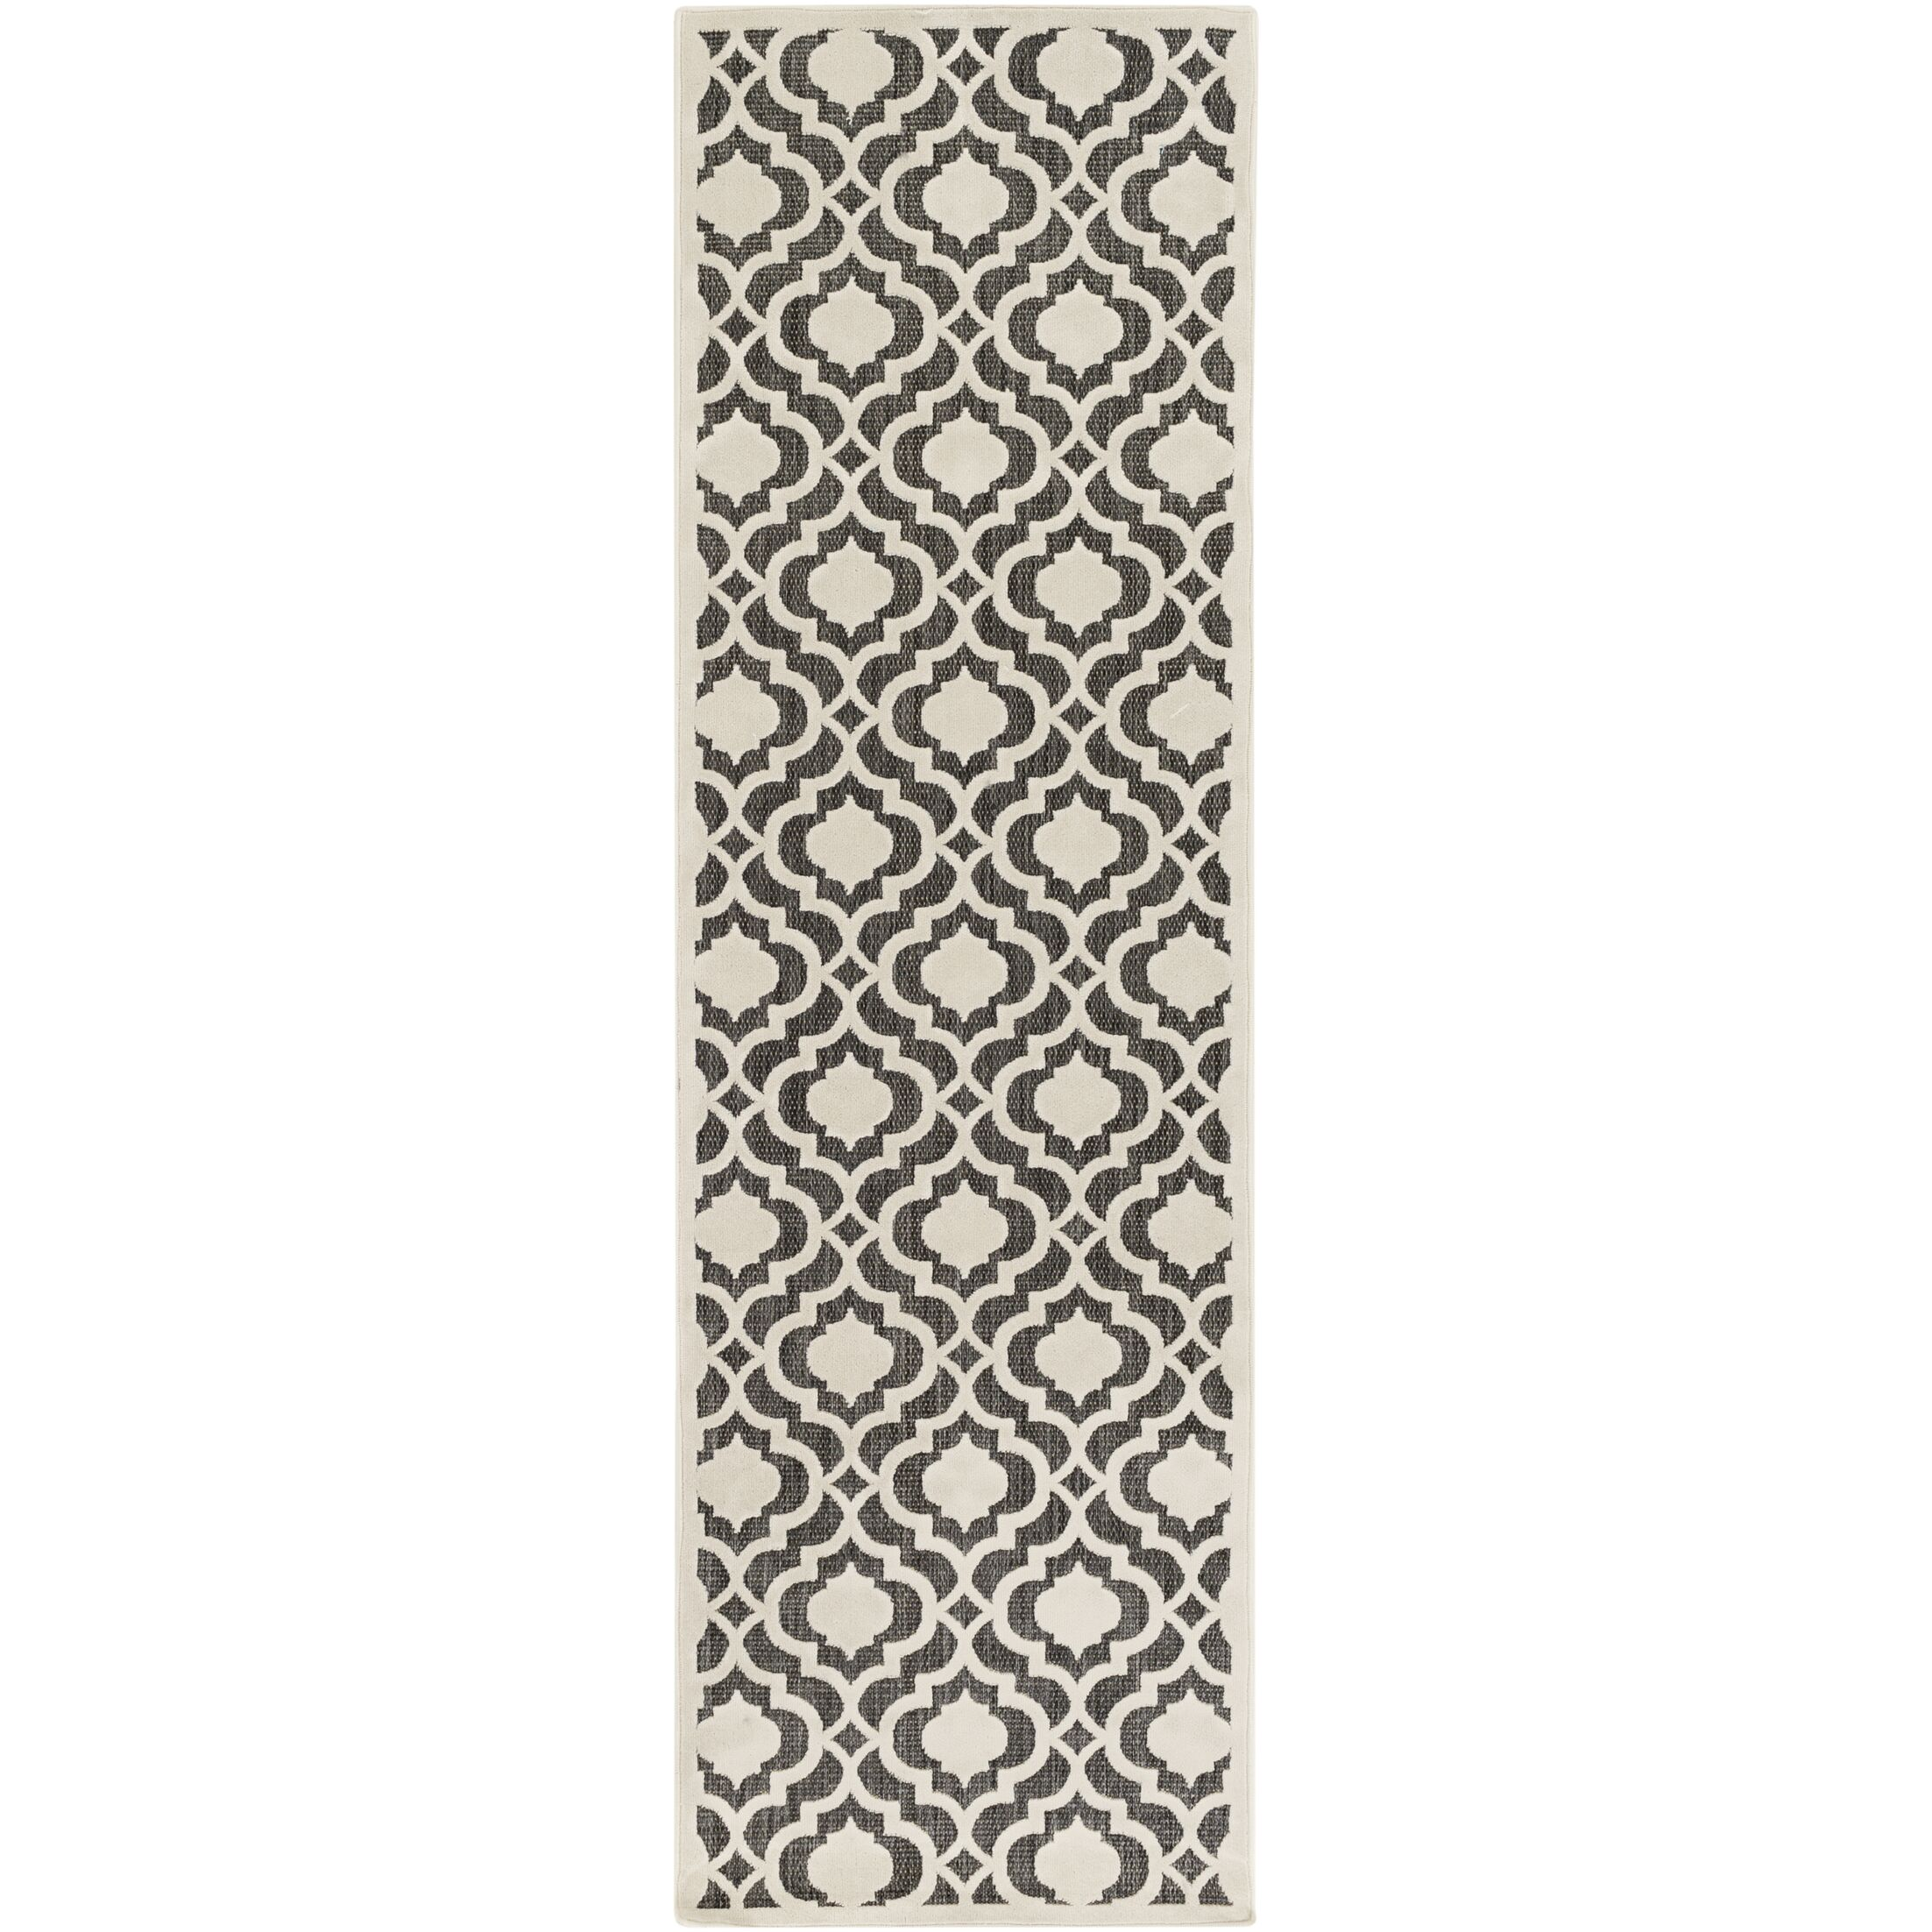 Countryman Ivory/Black Indoor/Outdoor Area Rug Rug Size: Rectangle 3'9